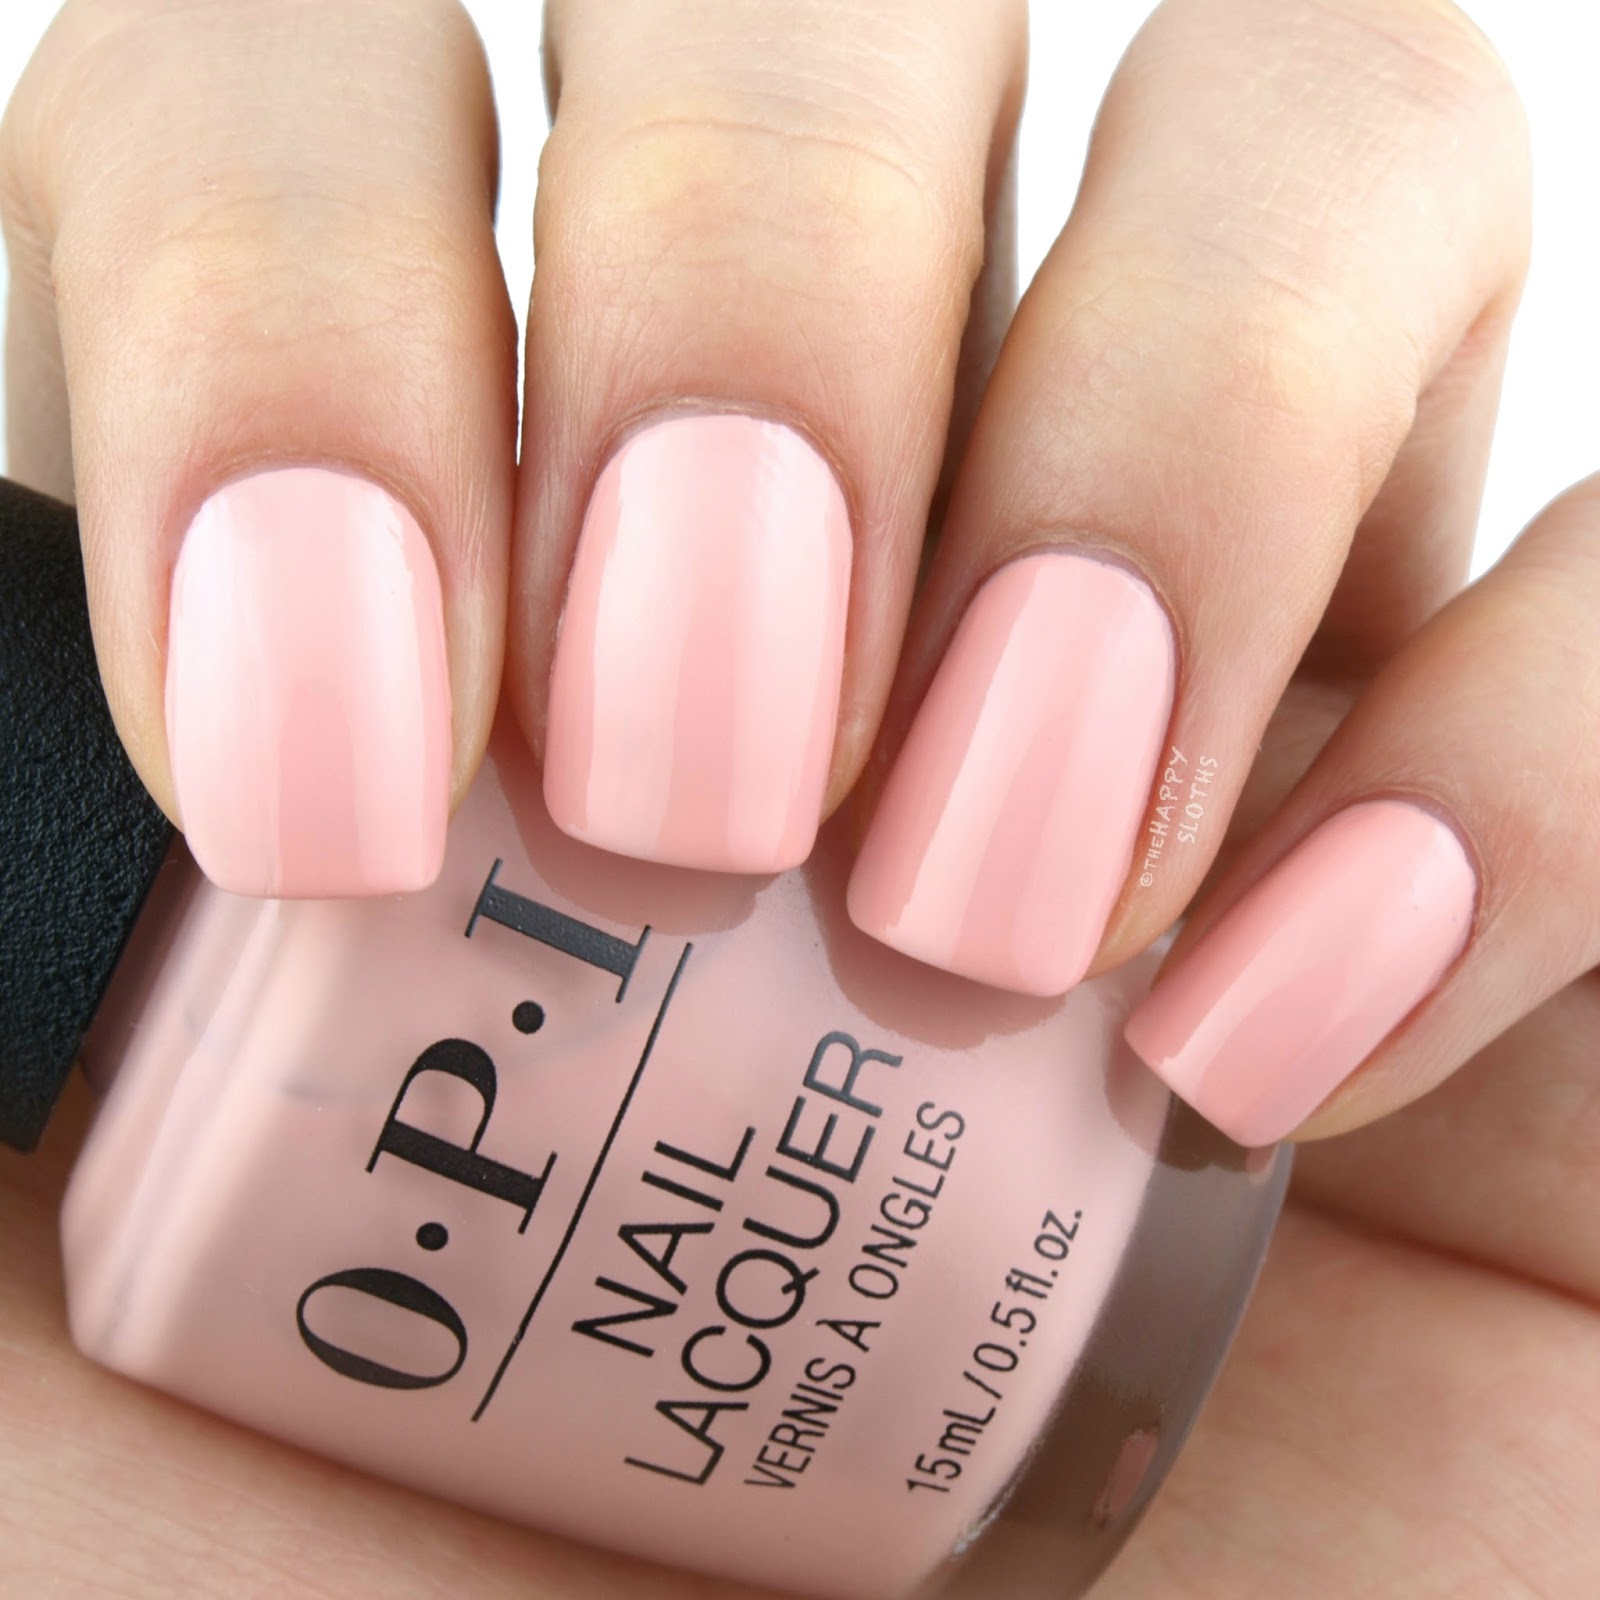 OPI Grease Collection | Hopelessly Devoted to OPI: Review and Swatches